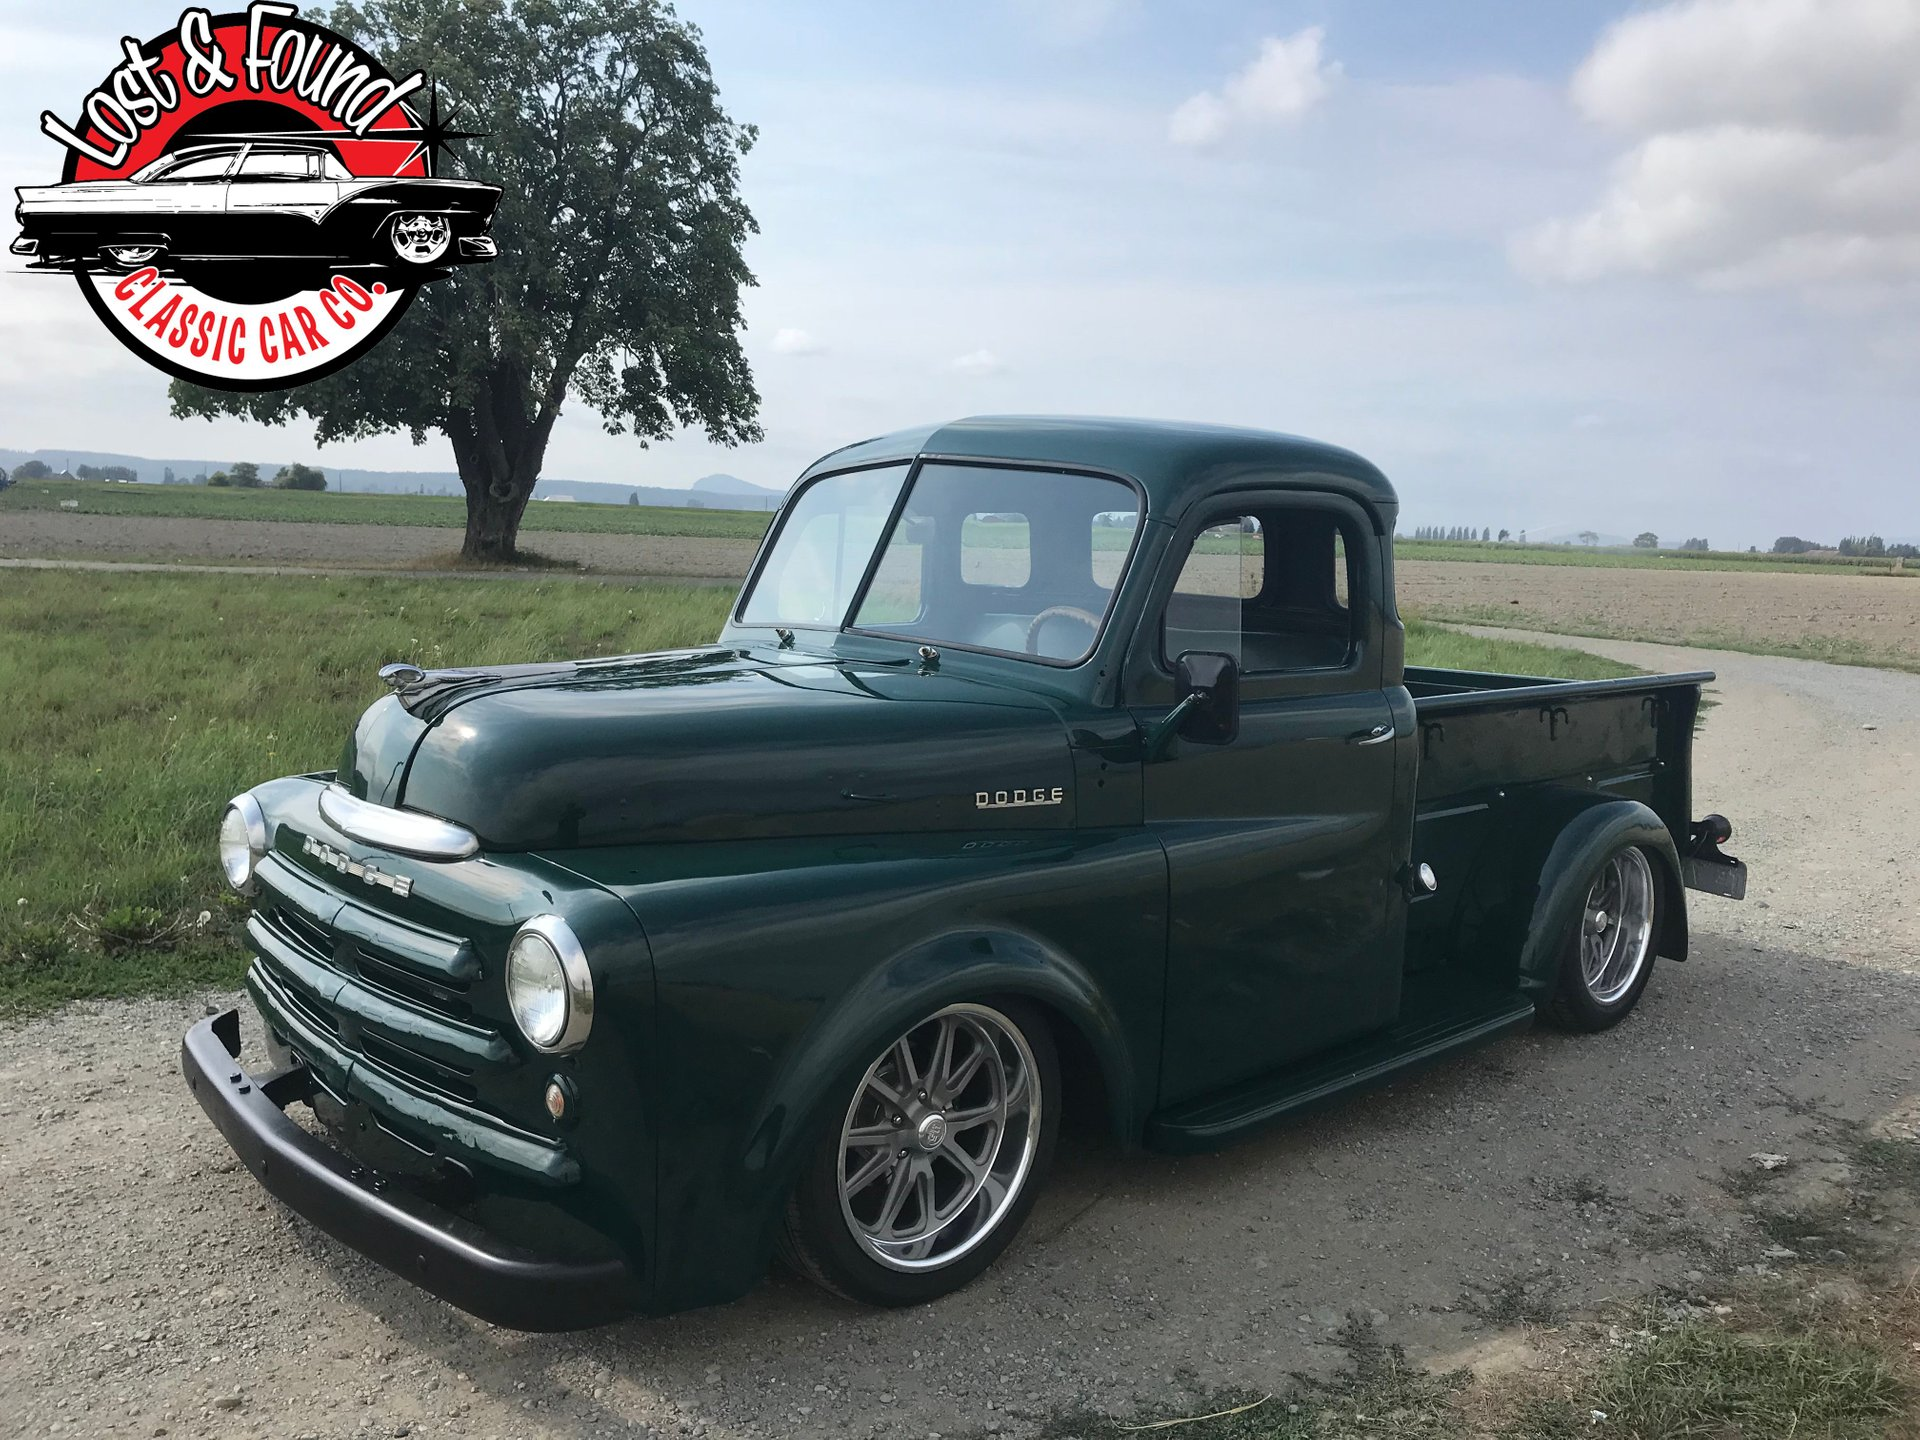 1949 dodge street rod pickup truck